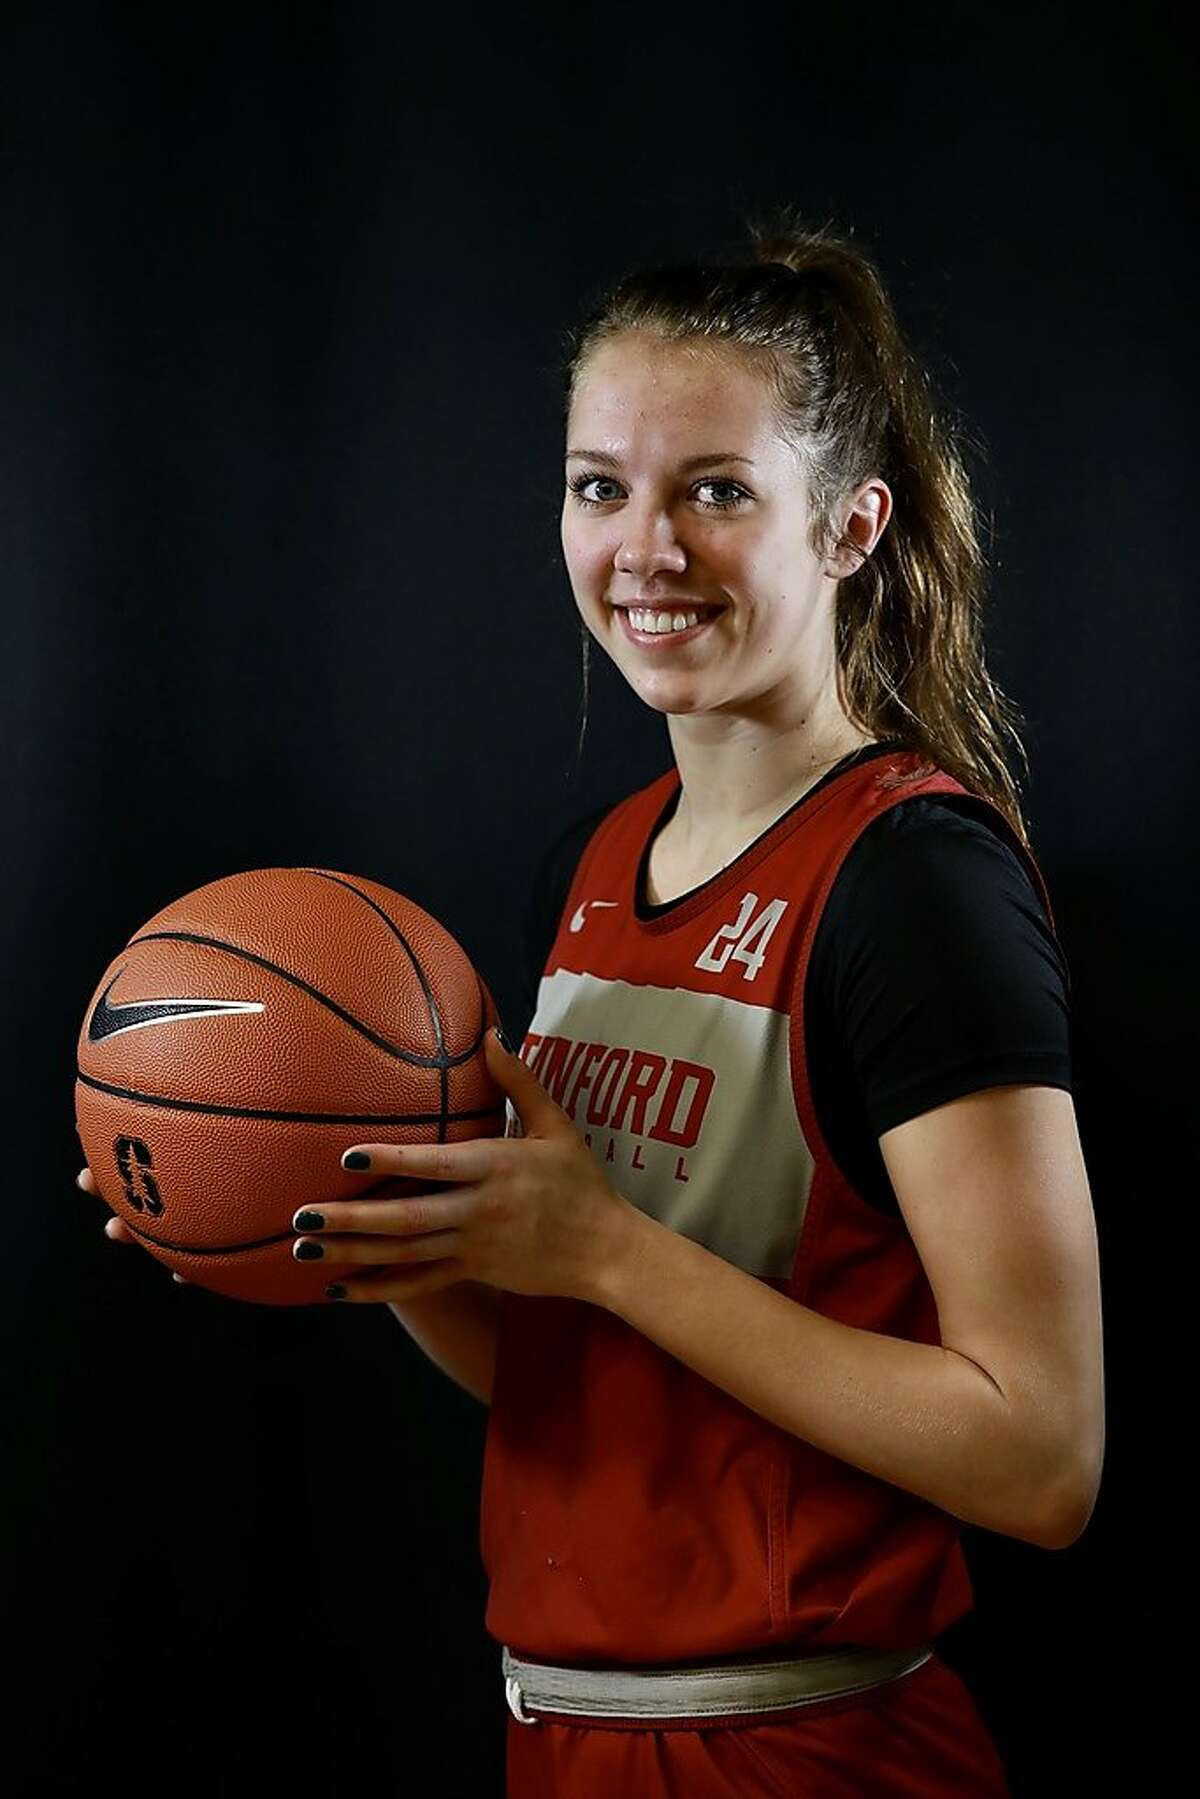 Lacie Hull poses for a portrait at Maples Pavilion at Stanford University in Stanford, Calif., on Tuesday, March 5, 2019. Hull and her twin sister Lexie, of Spokane, Wash., are guards for Stanford University's women's basketball team. They have made great strides as Stanford freshmen and will be key members of the rotation as the Cardinals play their first game in the Pac-12 tournament on Friday.